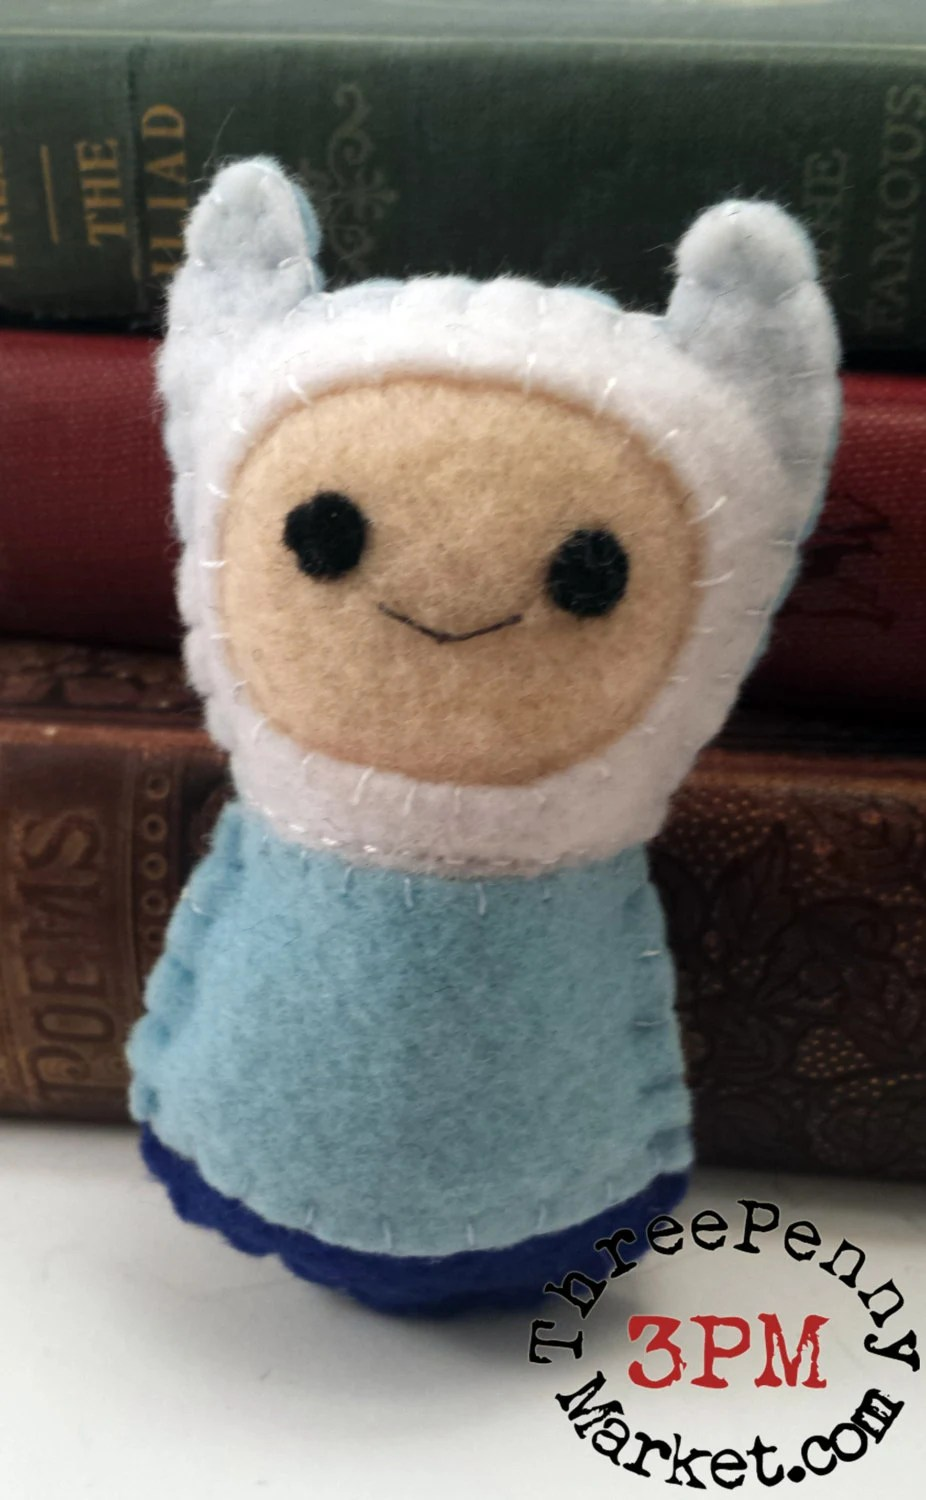 Finn the Human Adventure ...